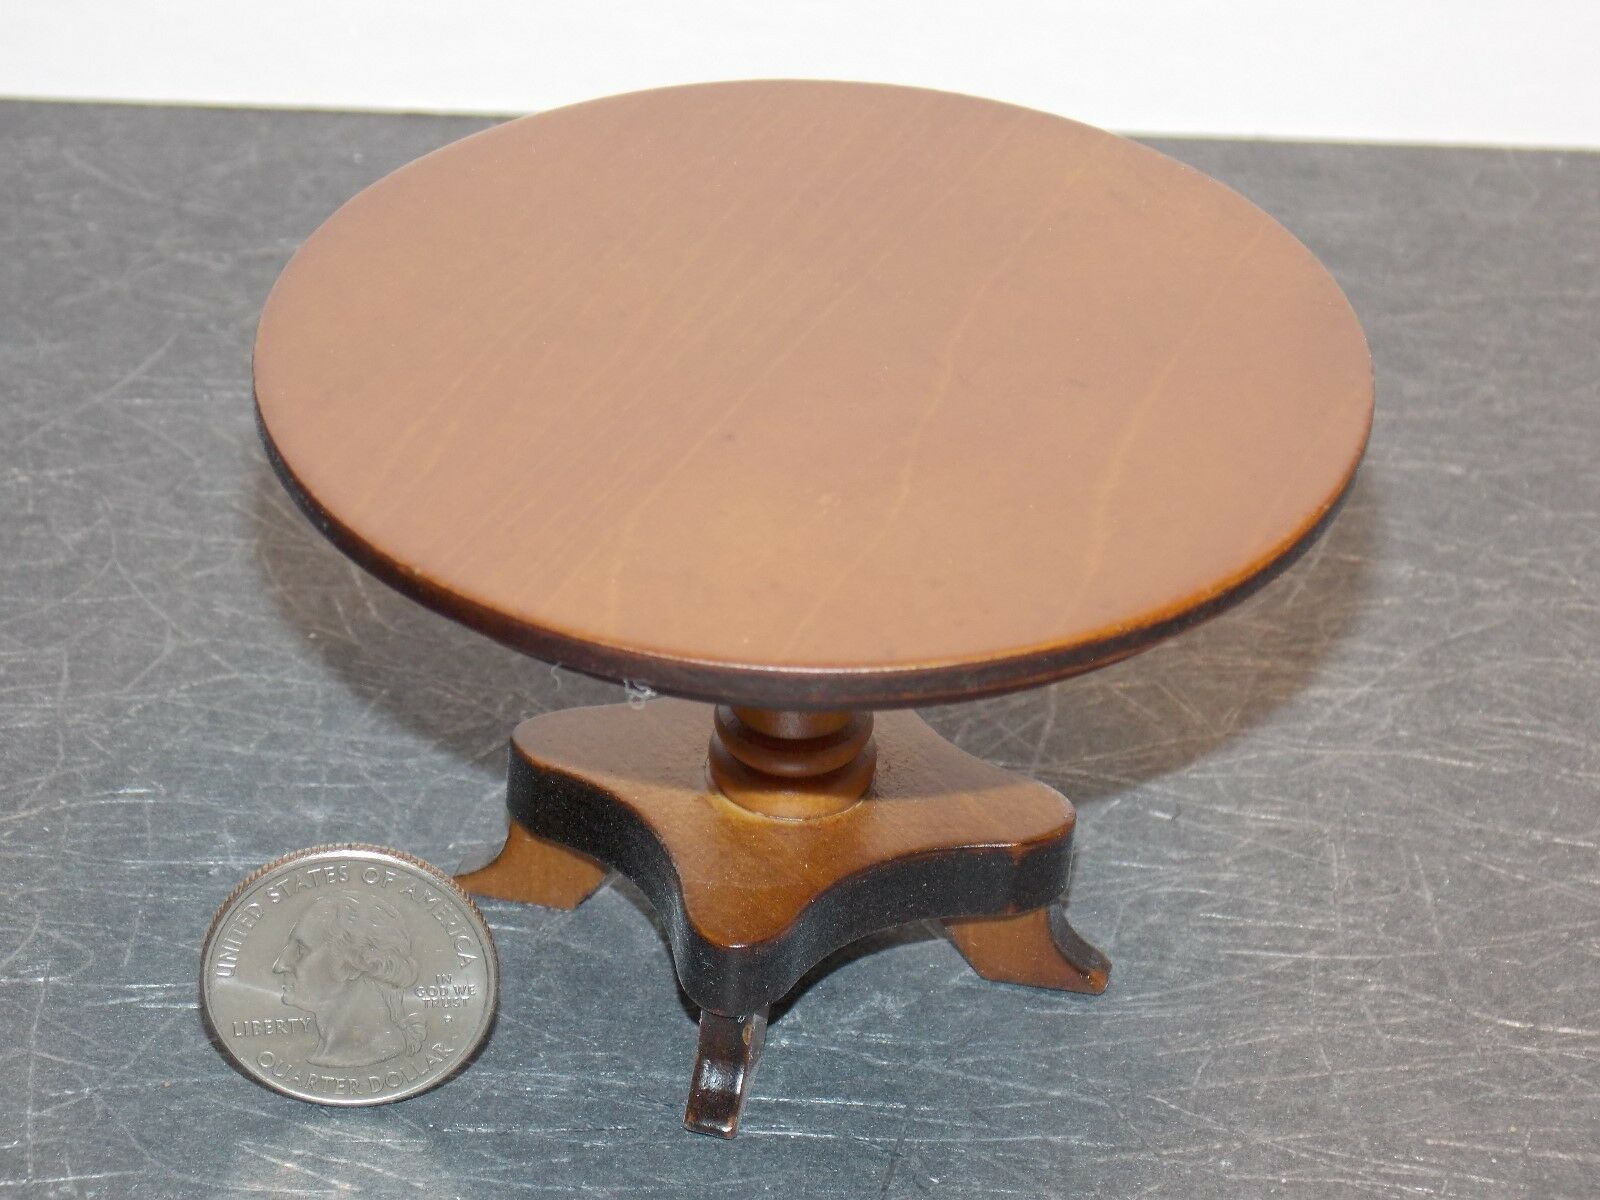 Dollhouse Miniature Round Kitchen Table Walnu 1:12 inch scale F30 Dollys Gallery